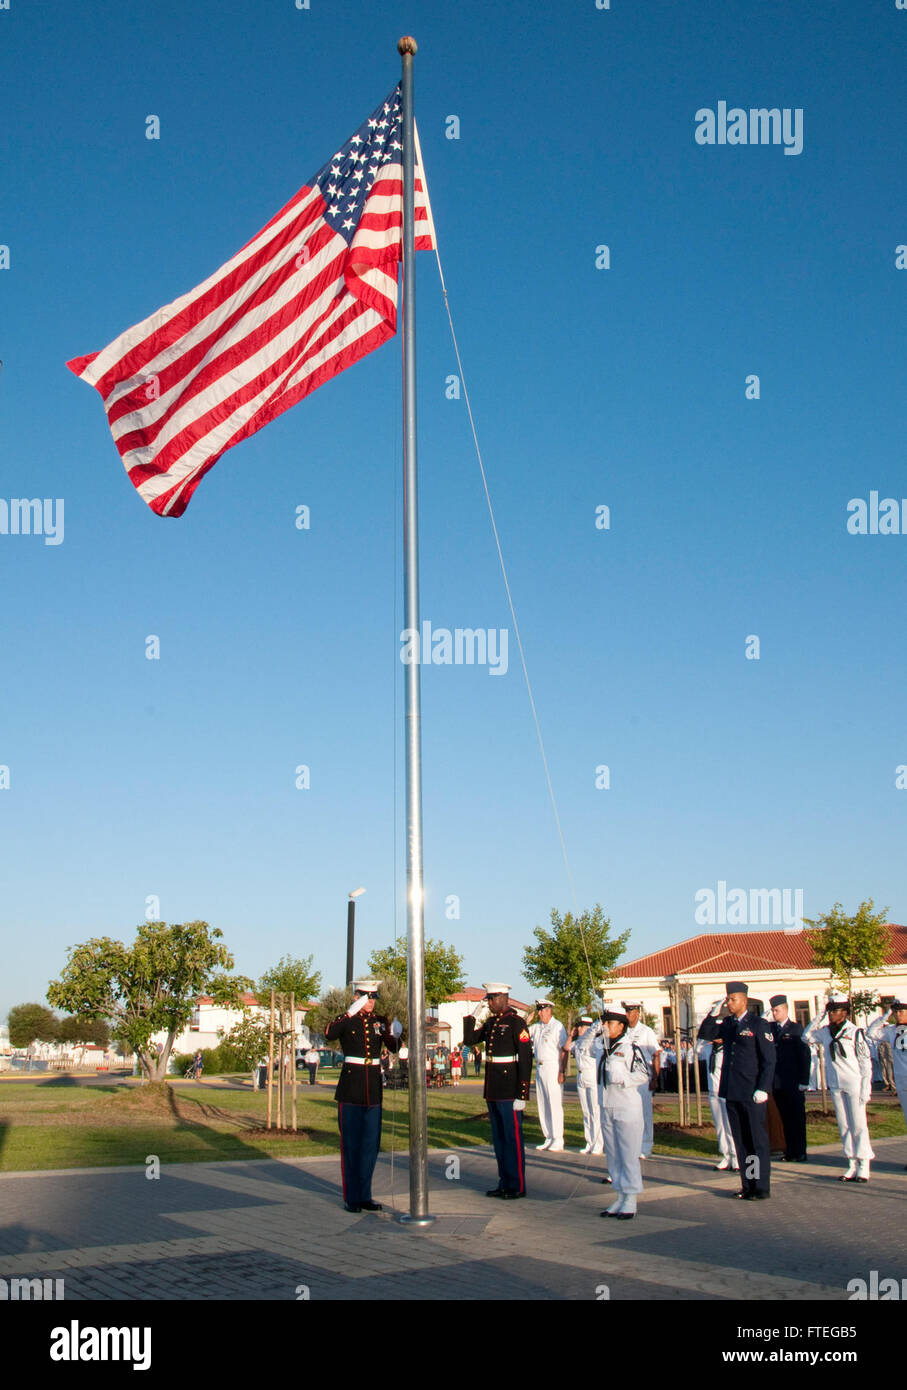 Flag Of U S Admiral Stockfotos & Flag Of U S Admiral Bilder - Alamy